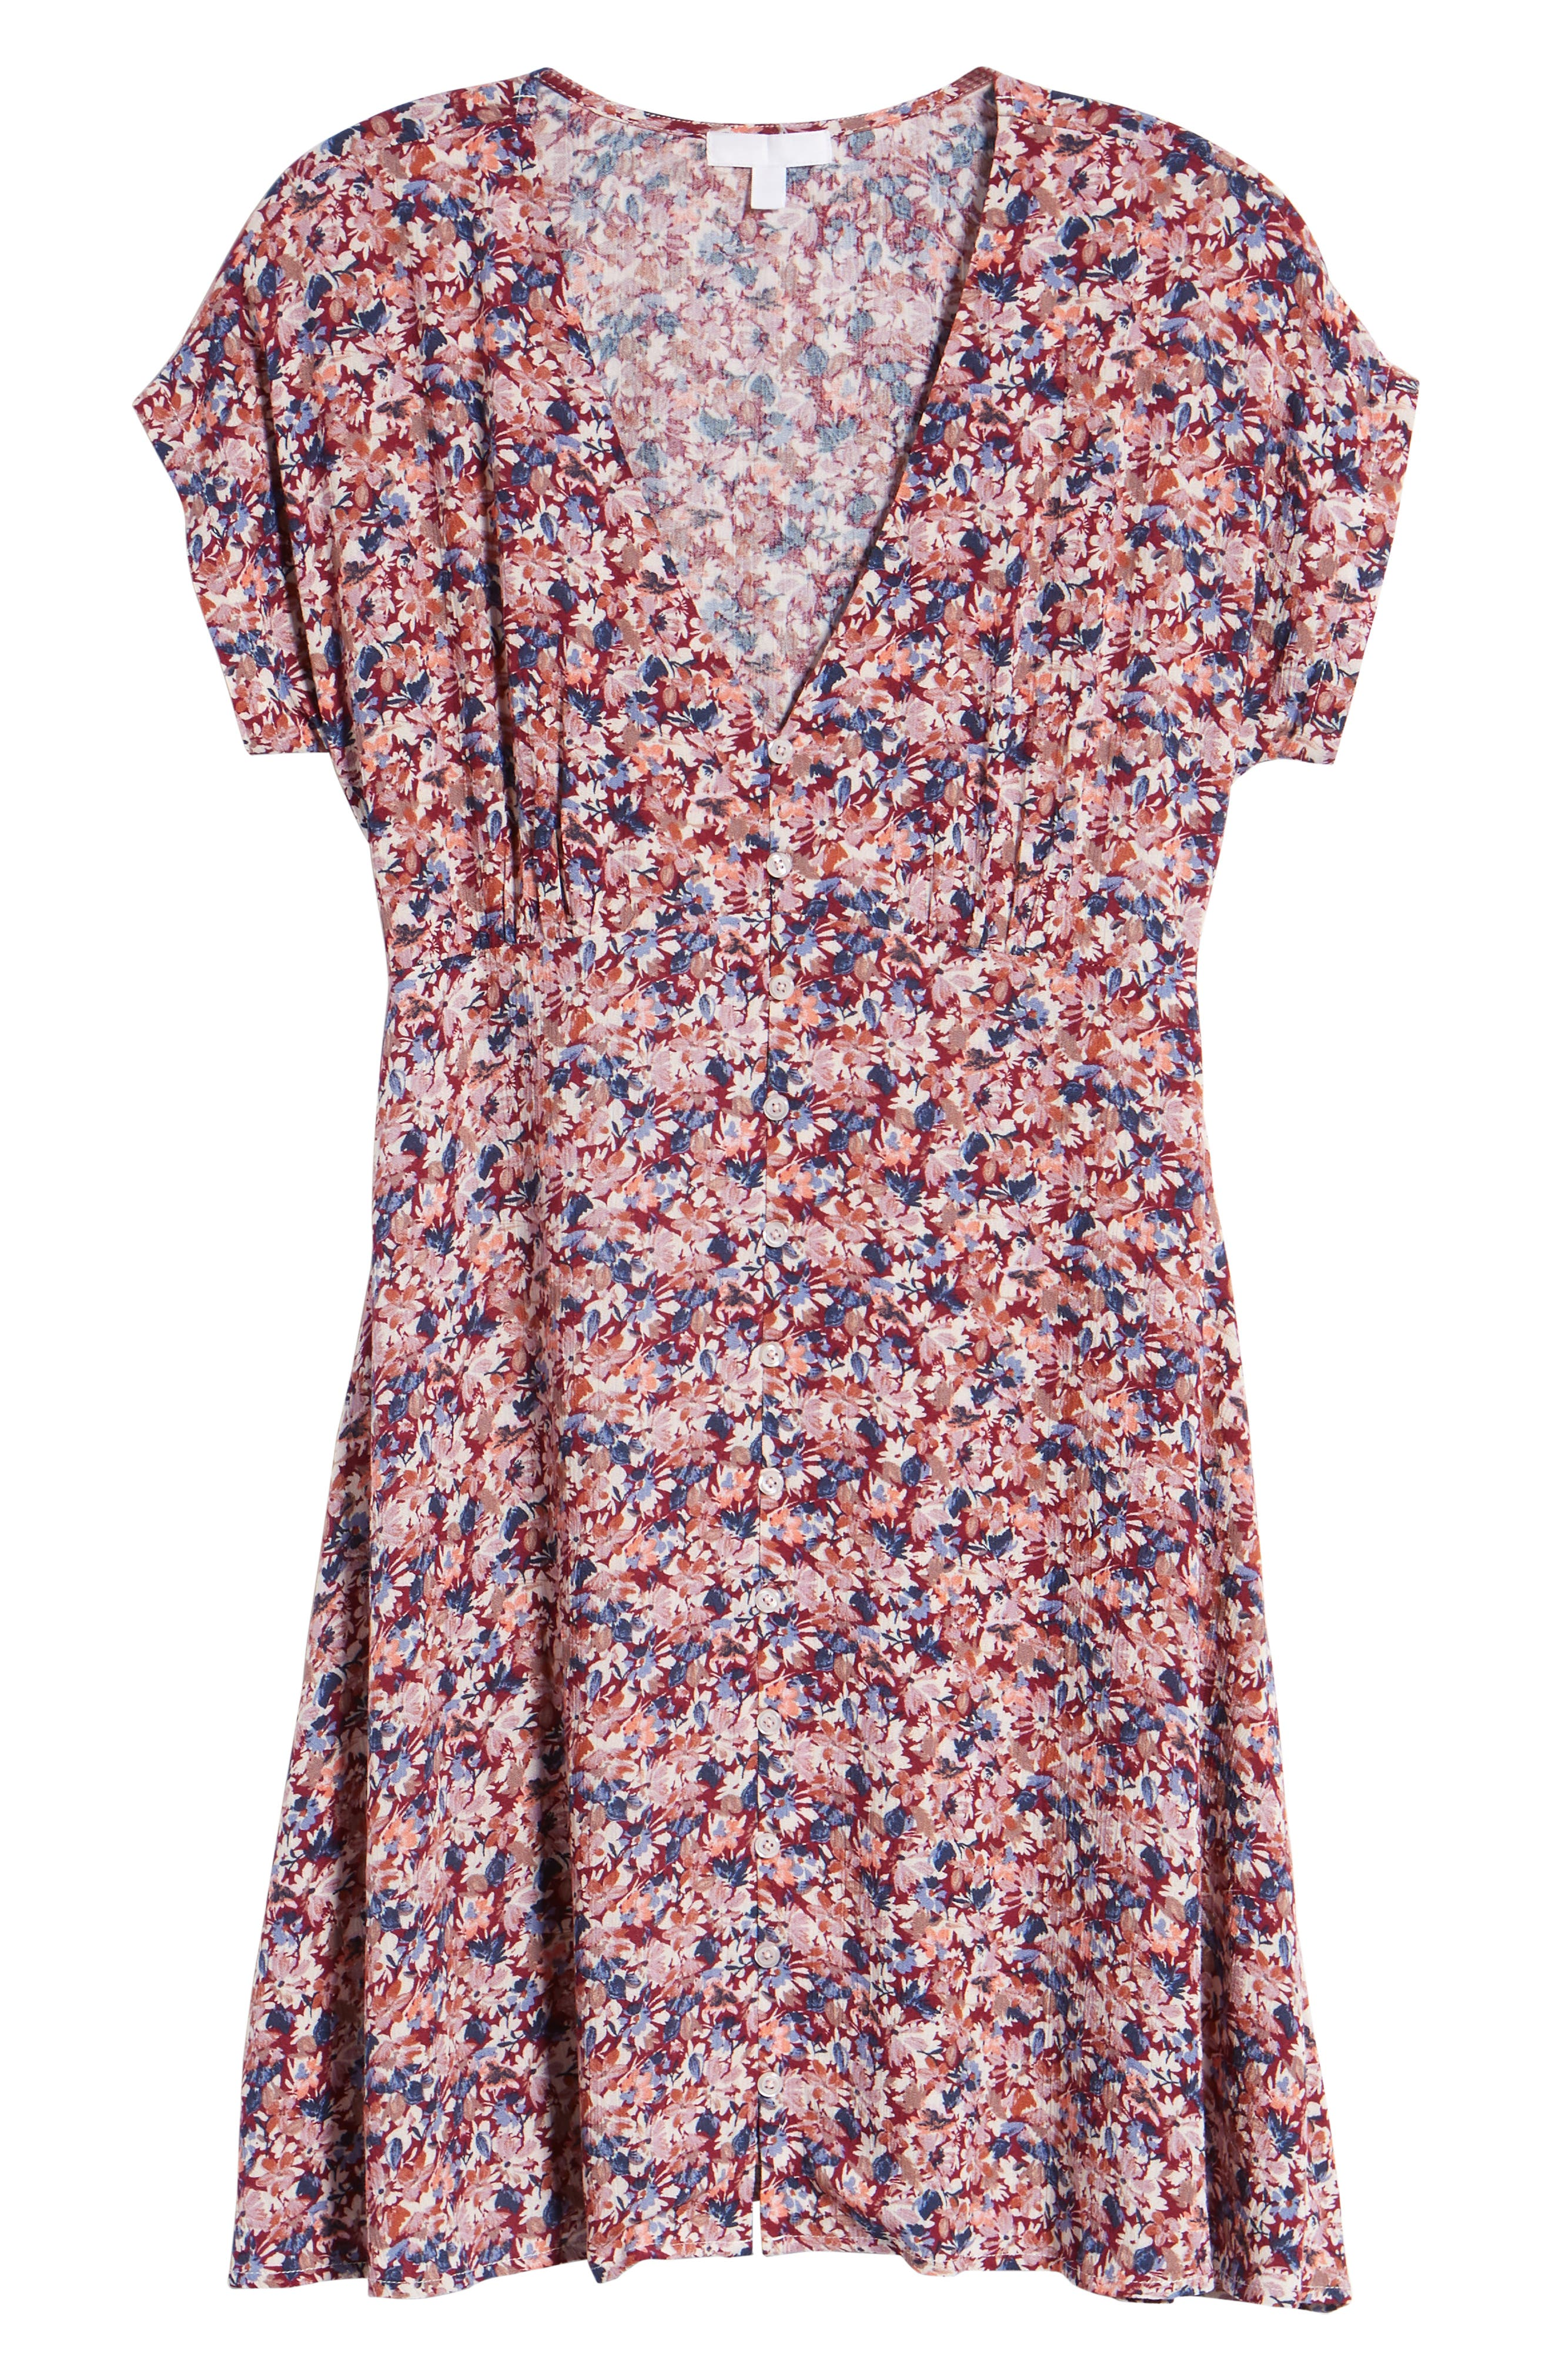 Floral Print Button Front Dress,                             Alternate thumbnail 7, color,                             Pink Floral